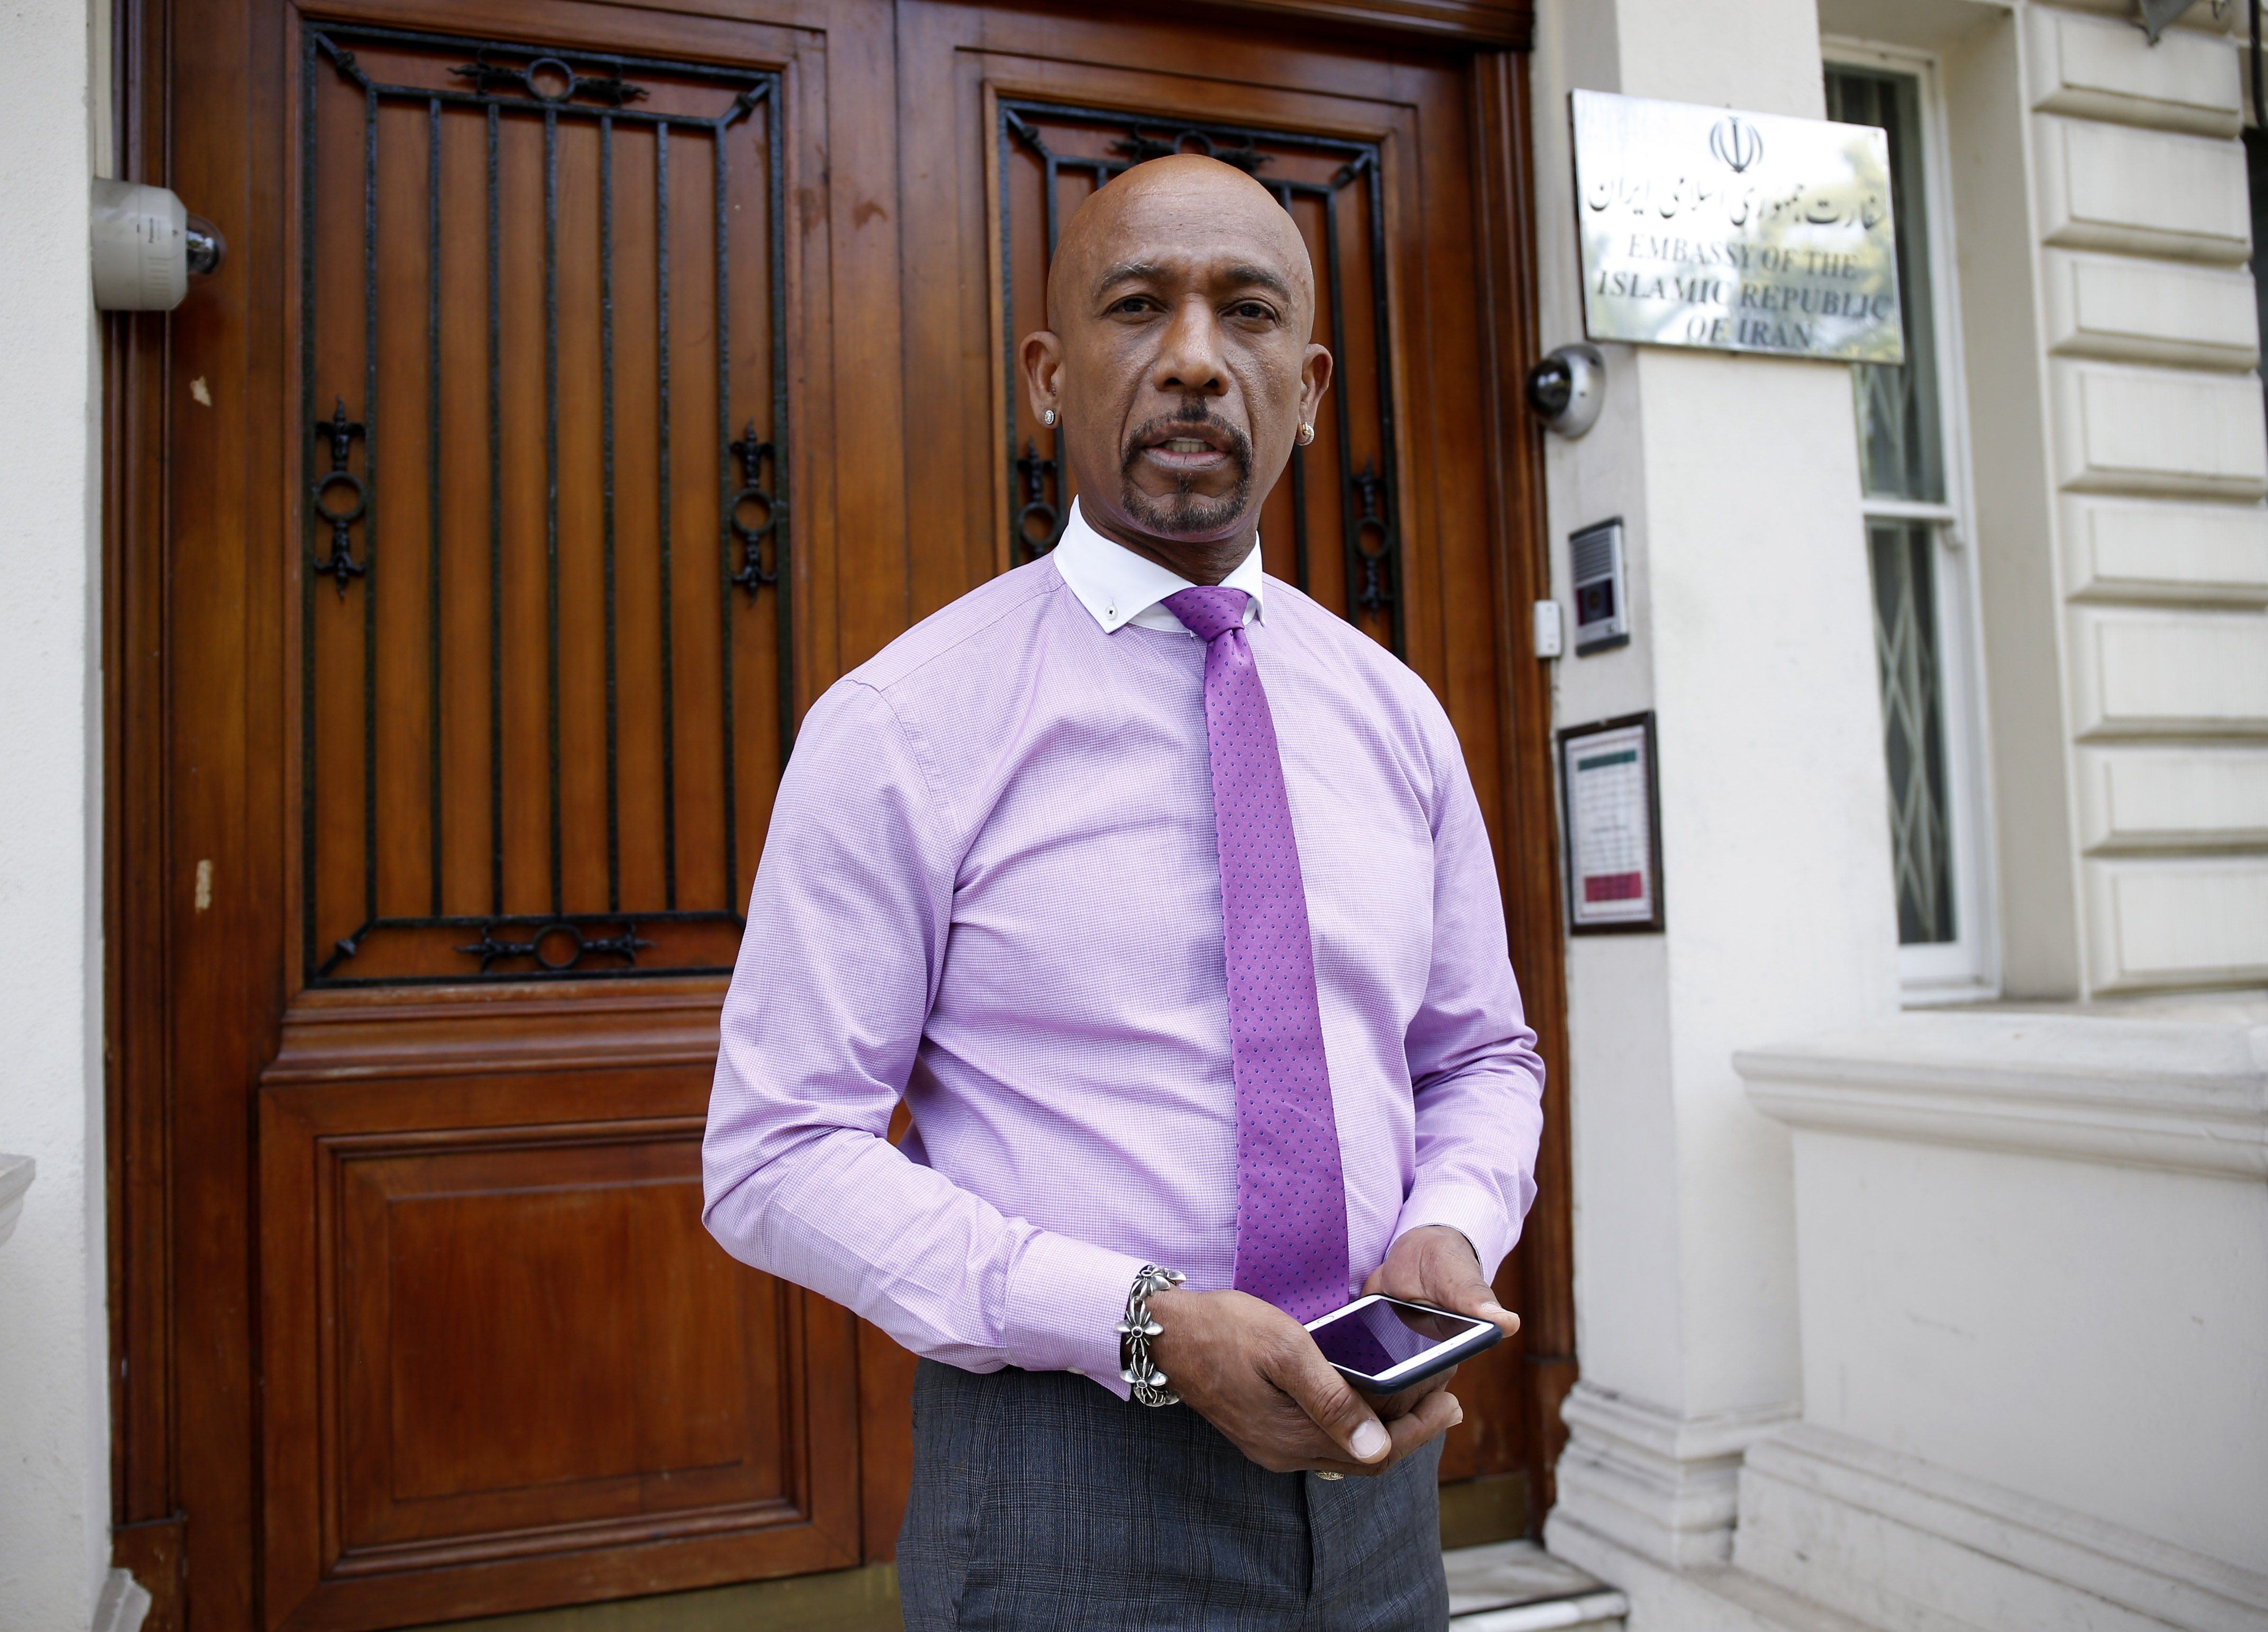 Montel Williams on June 26, 2015 in London, England | Photo: Getty Images